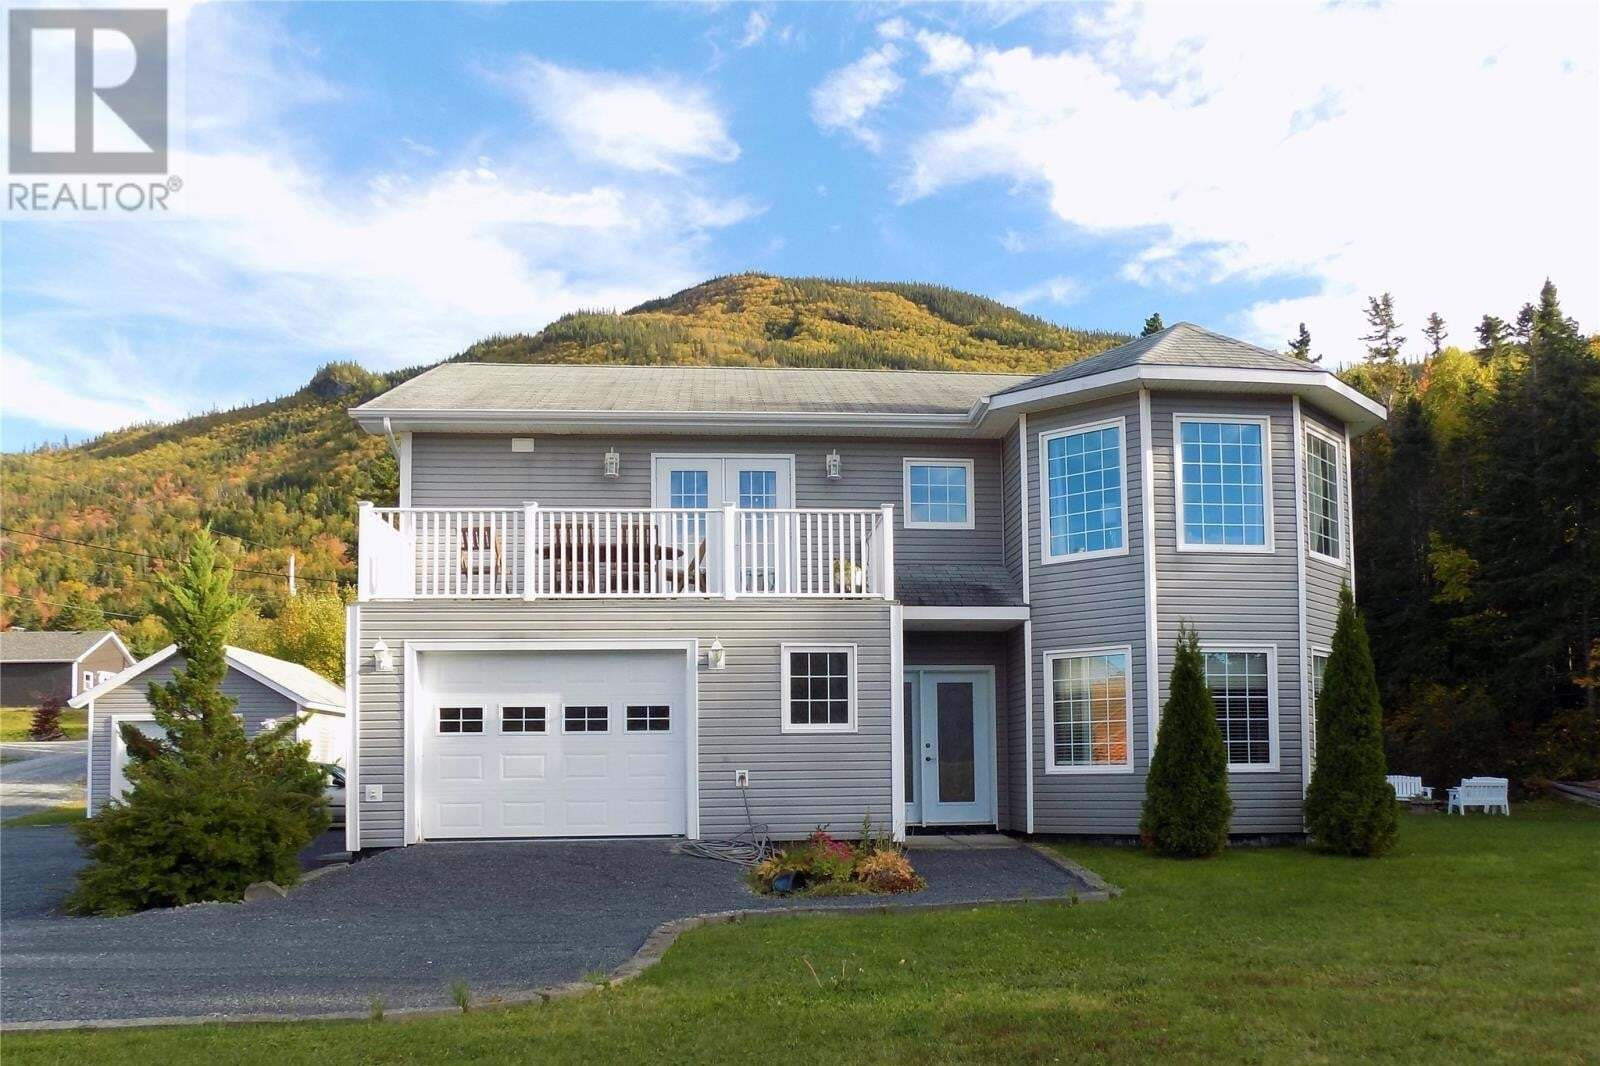 House for sale at 6 Mountainview Dr Little Rapids Newfoundland - MLS: 1213742